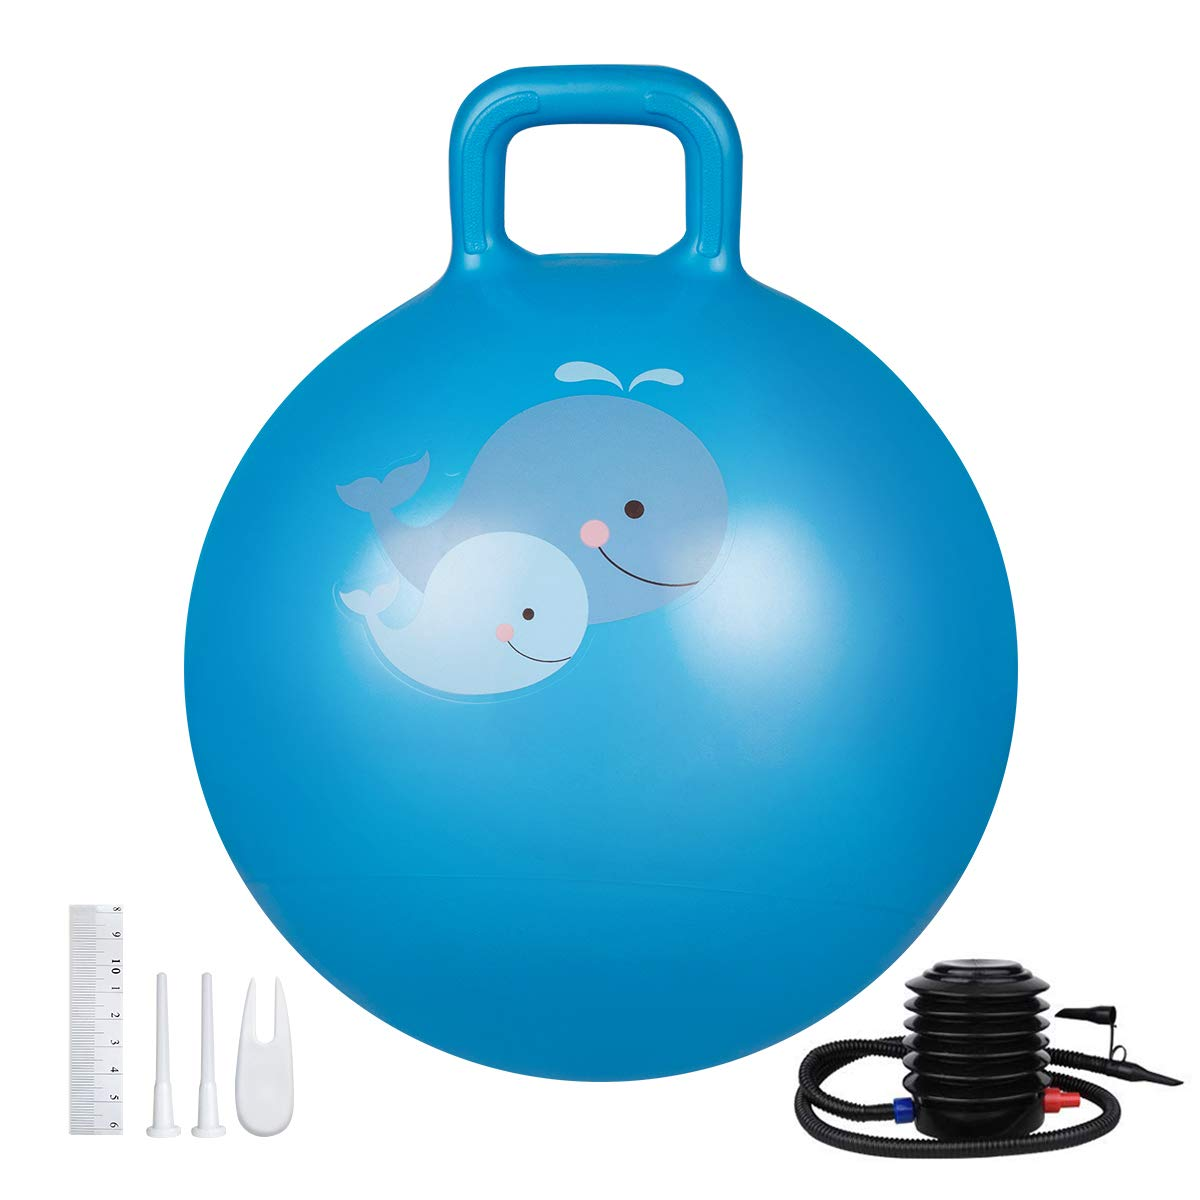 Trideer Hopper Ball Kids Exercise Ball Multi Function Jump Ball Bouncy Ball With Handles Kids Balance Ball And Ball Chair For Children Age 3 12 Air Pump Included Team Immortal Forever Fit